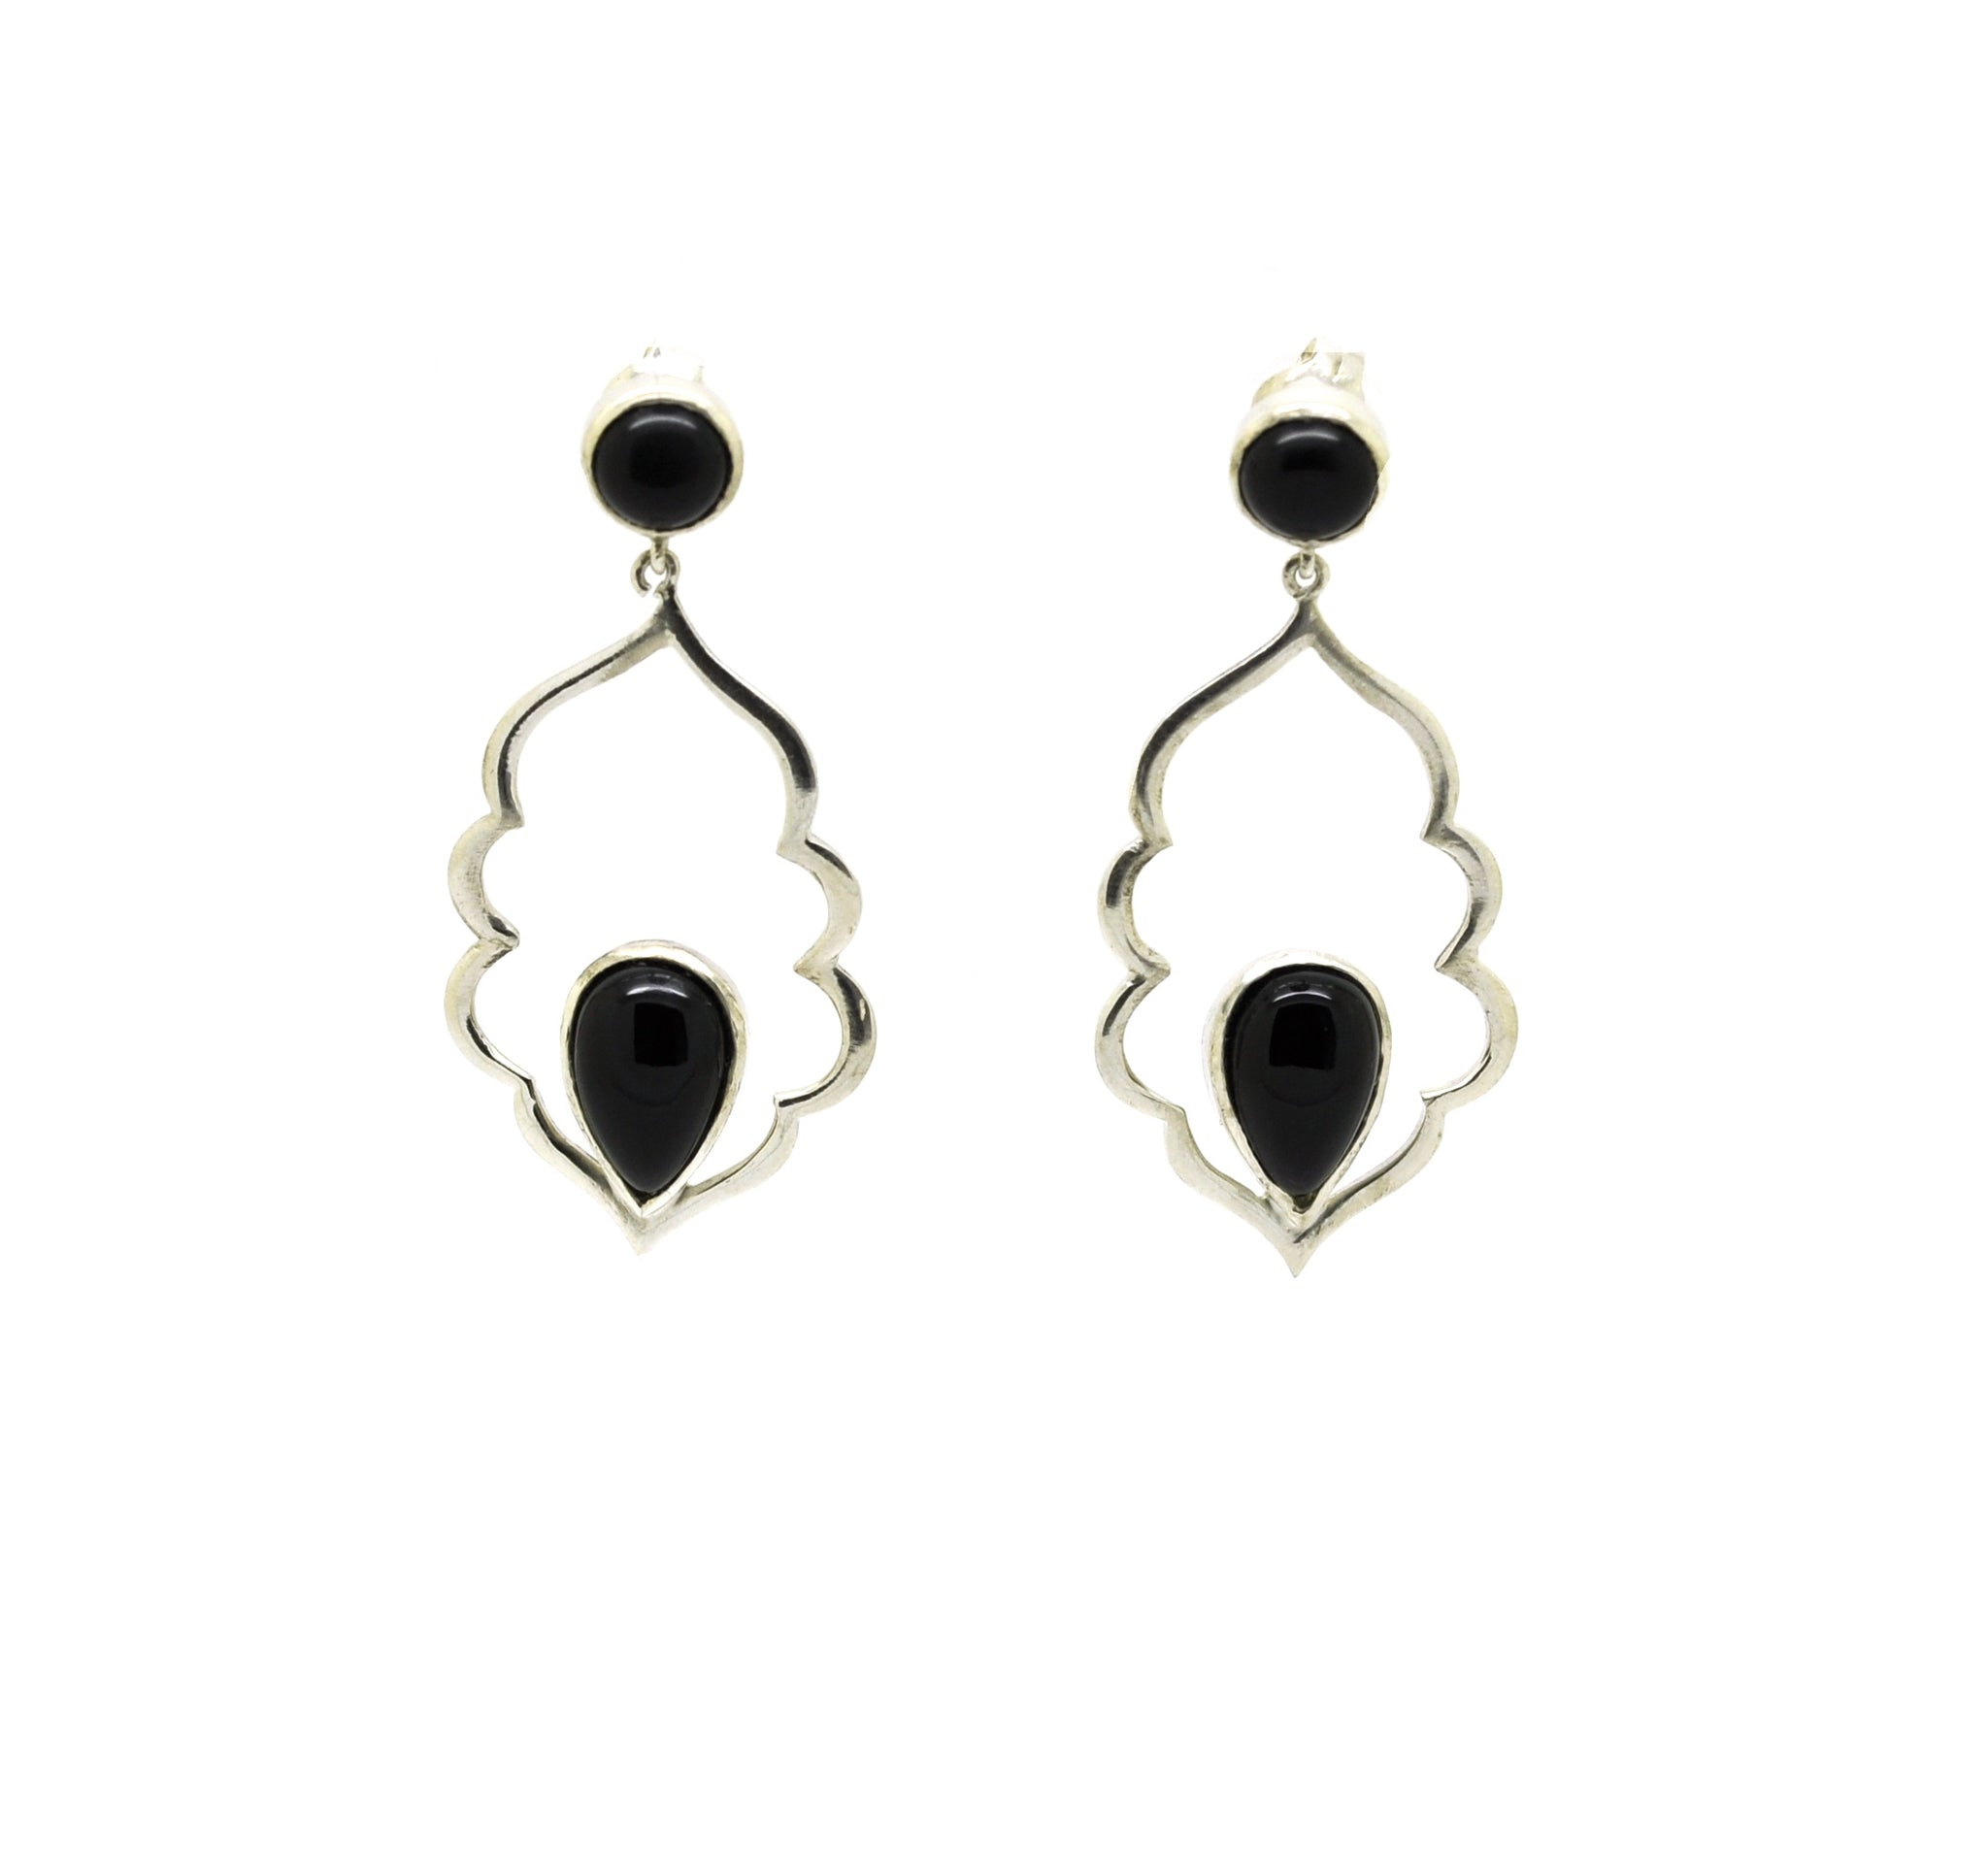 20 in 2020 - Moroccan shape black onyx